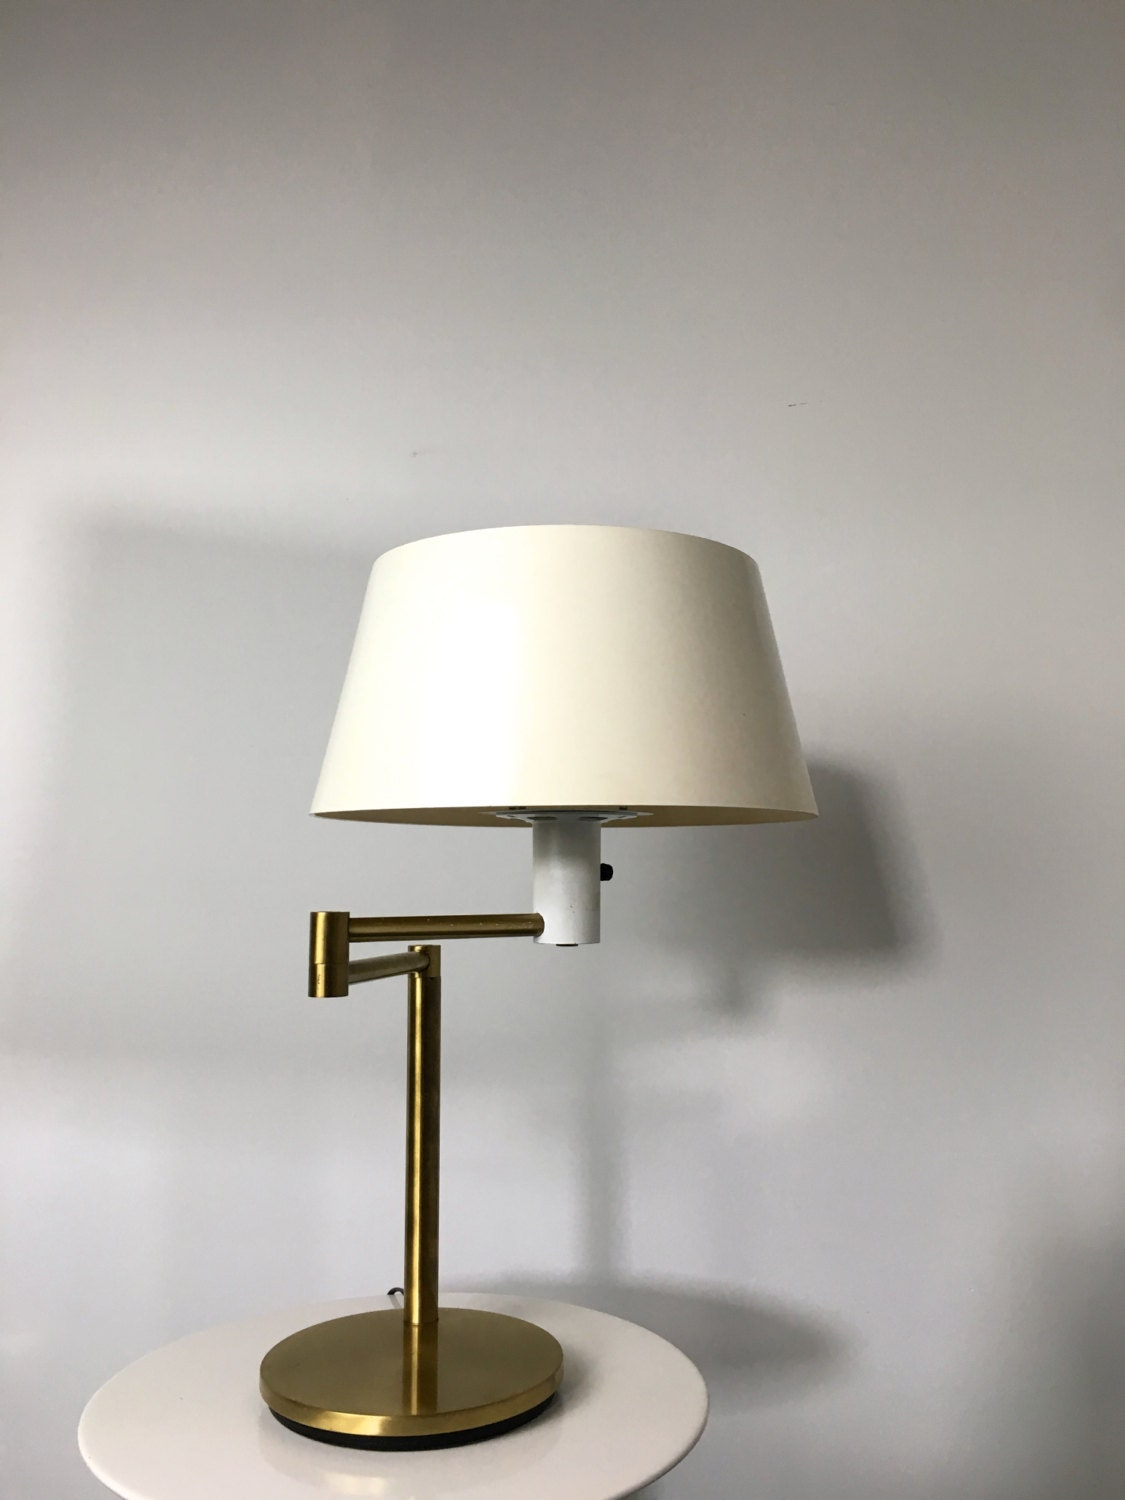 Rare vintage gerald thurston for lightolier mid century modern rare vintage gerald thurston for lightolier mid century modern brass swing arm table desk lamp geotapseo Image collections